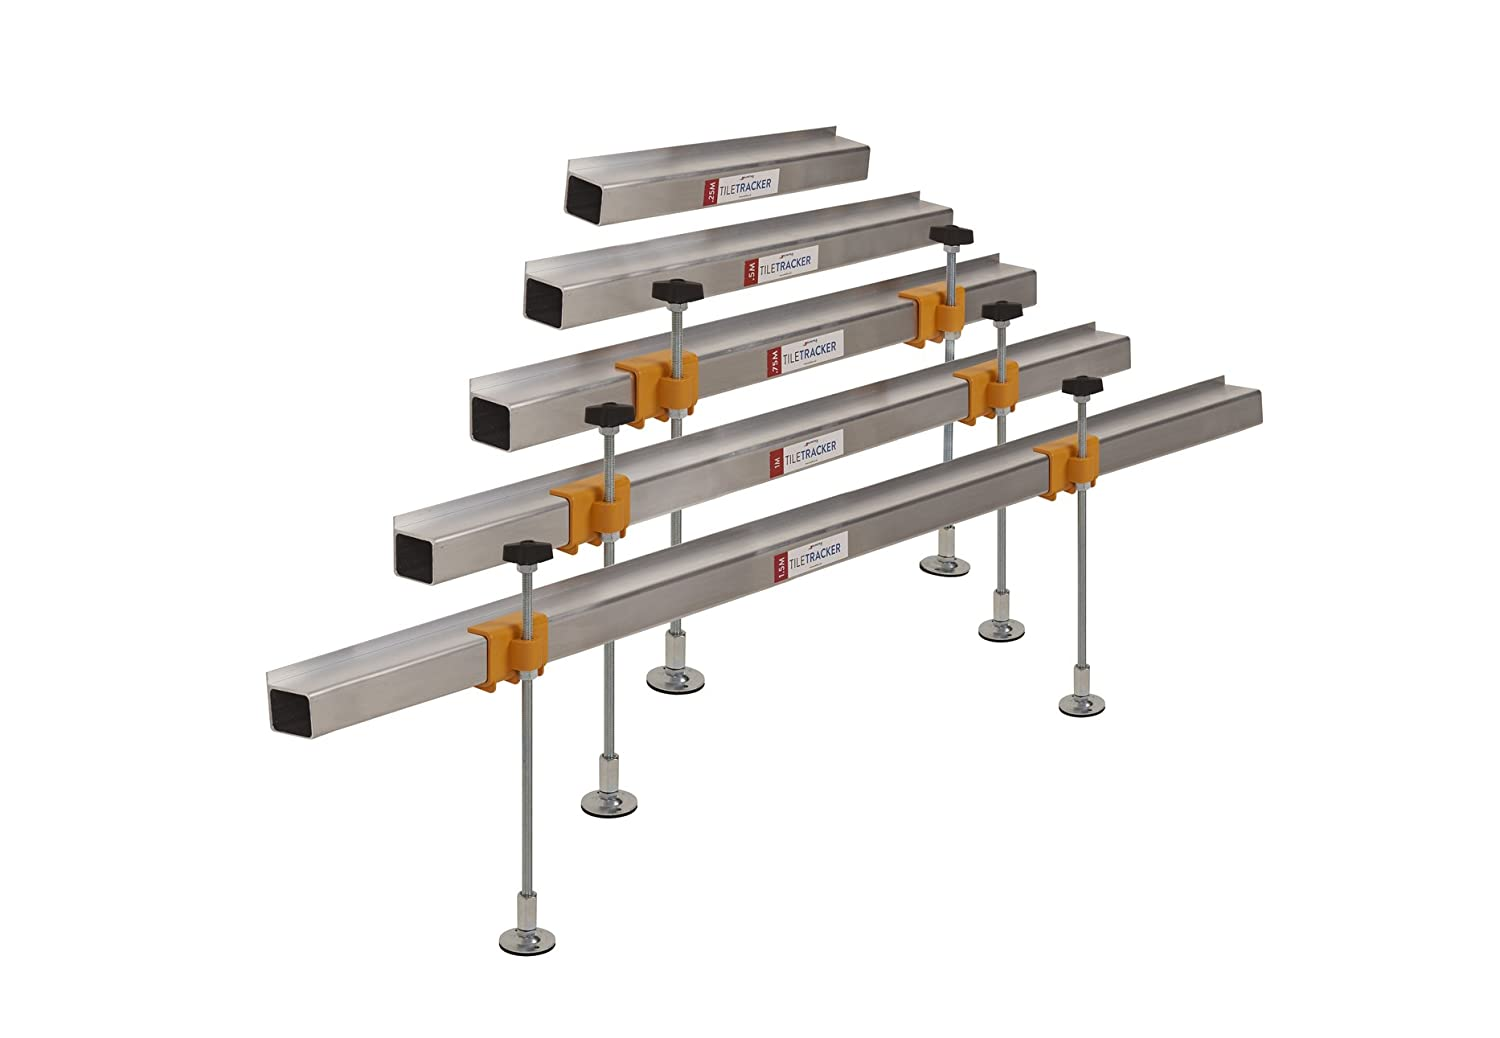 Tiletracker ULTIMATE Free-standing Cables /& Dampproof Membranes Rotating Feet With Anti-slip Pads Ready To Use In 2 Minutes |Avoid Damaging Hidden Pipes Strong Fully Adjustable Wall Tiling Batten Supports set Lightweight Aluminium 300mm Legs |